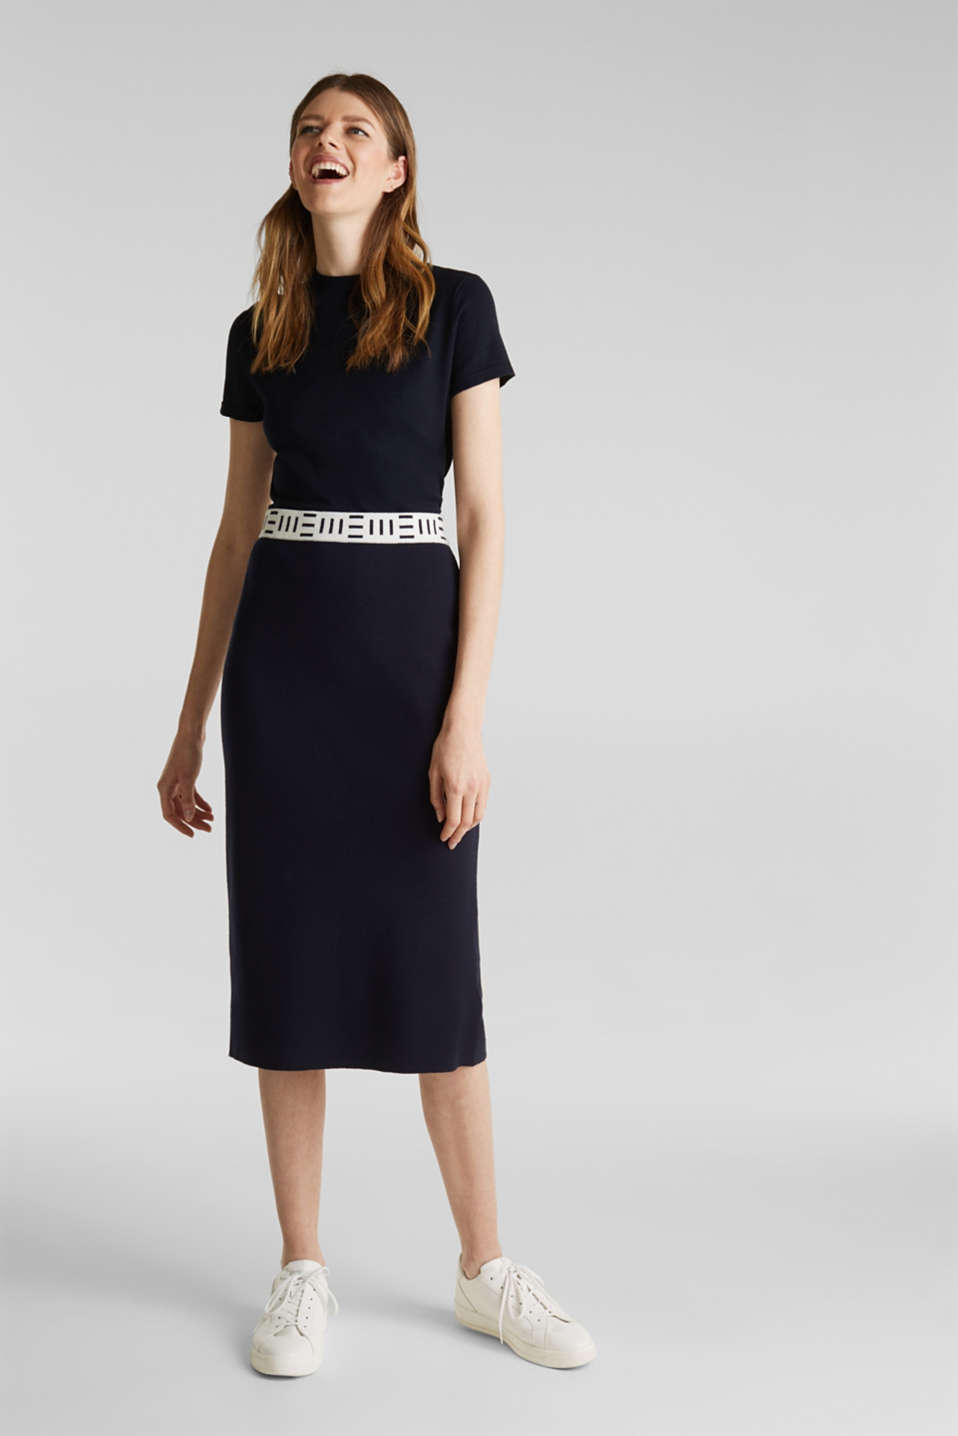 Slim-fitting knit skirt with a logo waistband, NAVY, detail image number 6